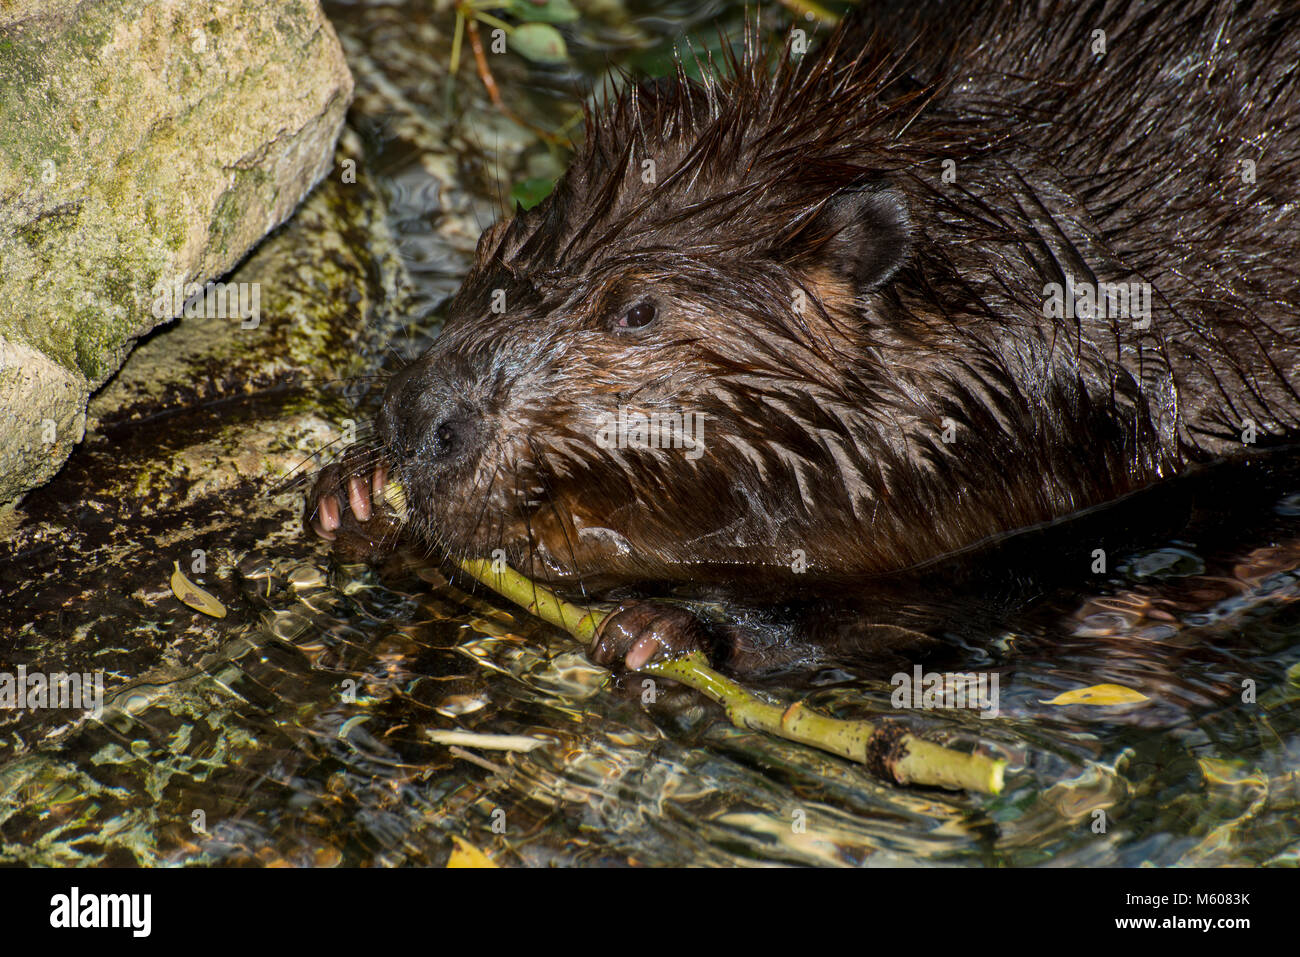 Apple Valley, Minnesota. Minnesota Zoo.  American Beaver, Castor canadensis.  Beaver chewing the bark off a branch. Stock Photo